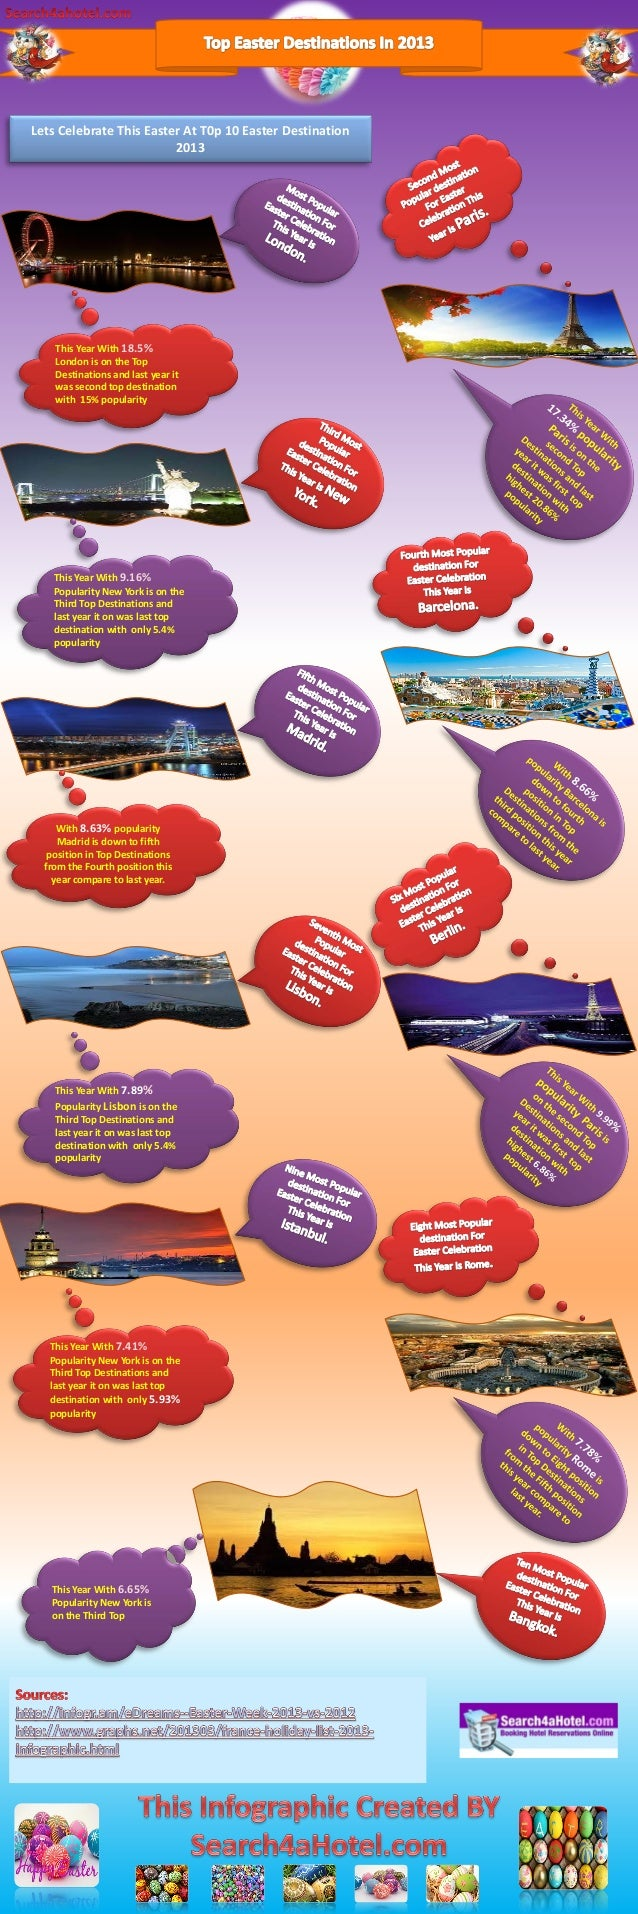 Lets Celebrate This Easter At T0p 10 Easter Destination                         2013    This Year With 18.5%    London is ...